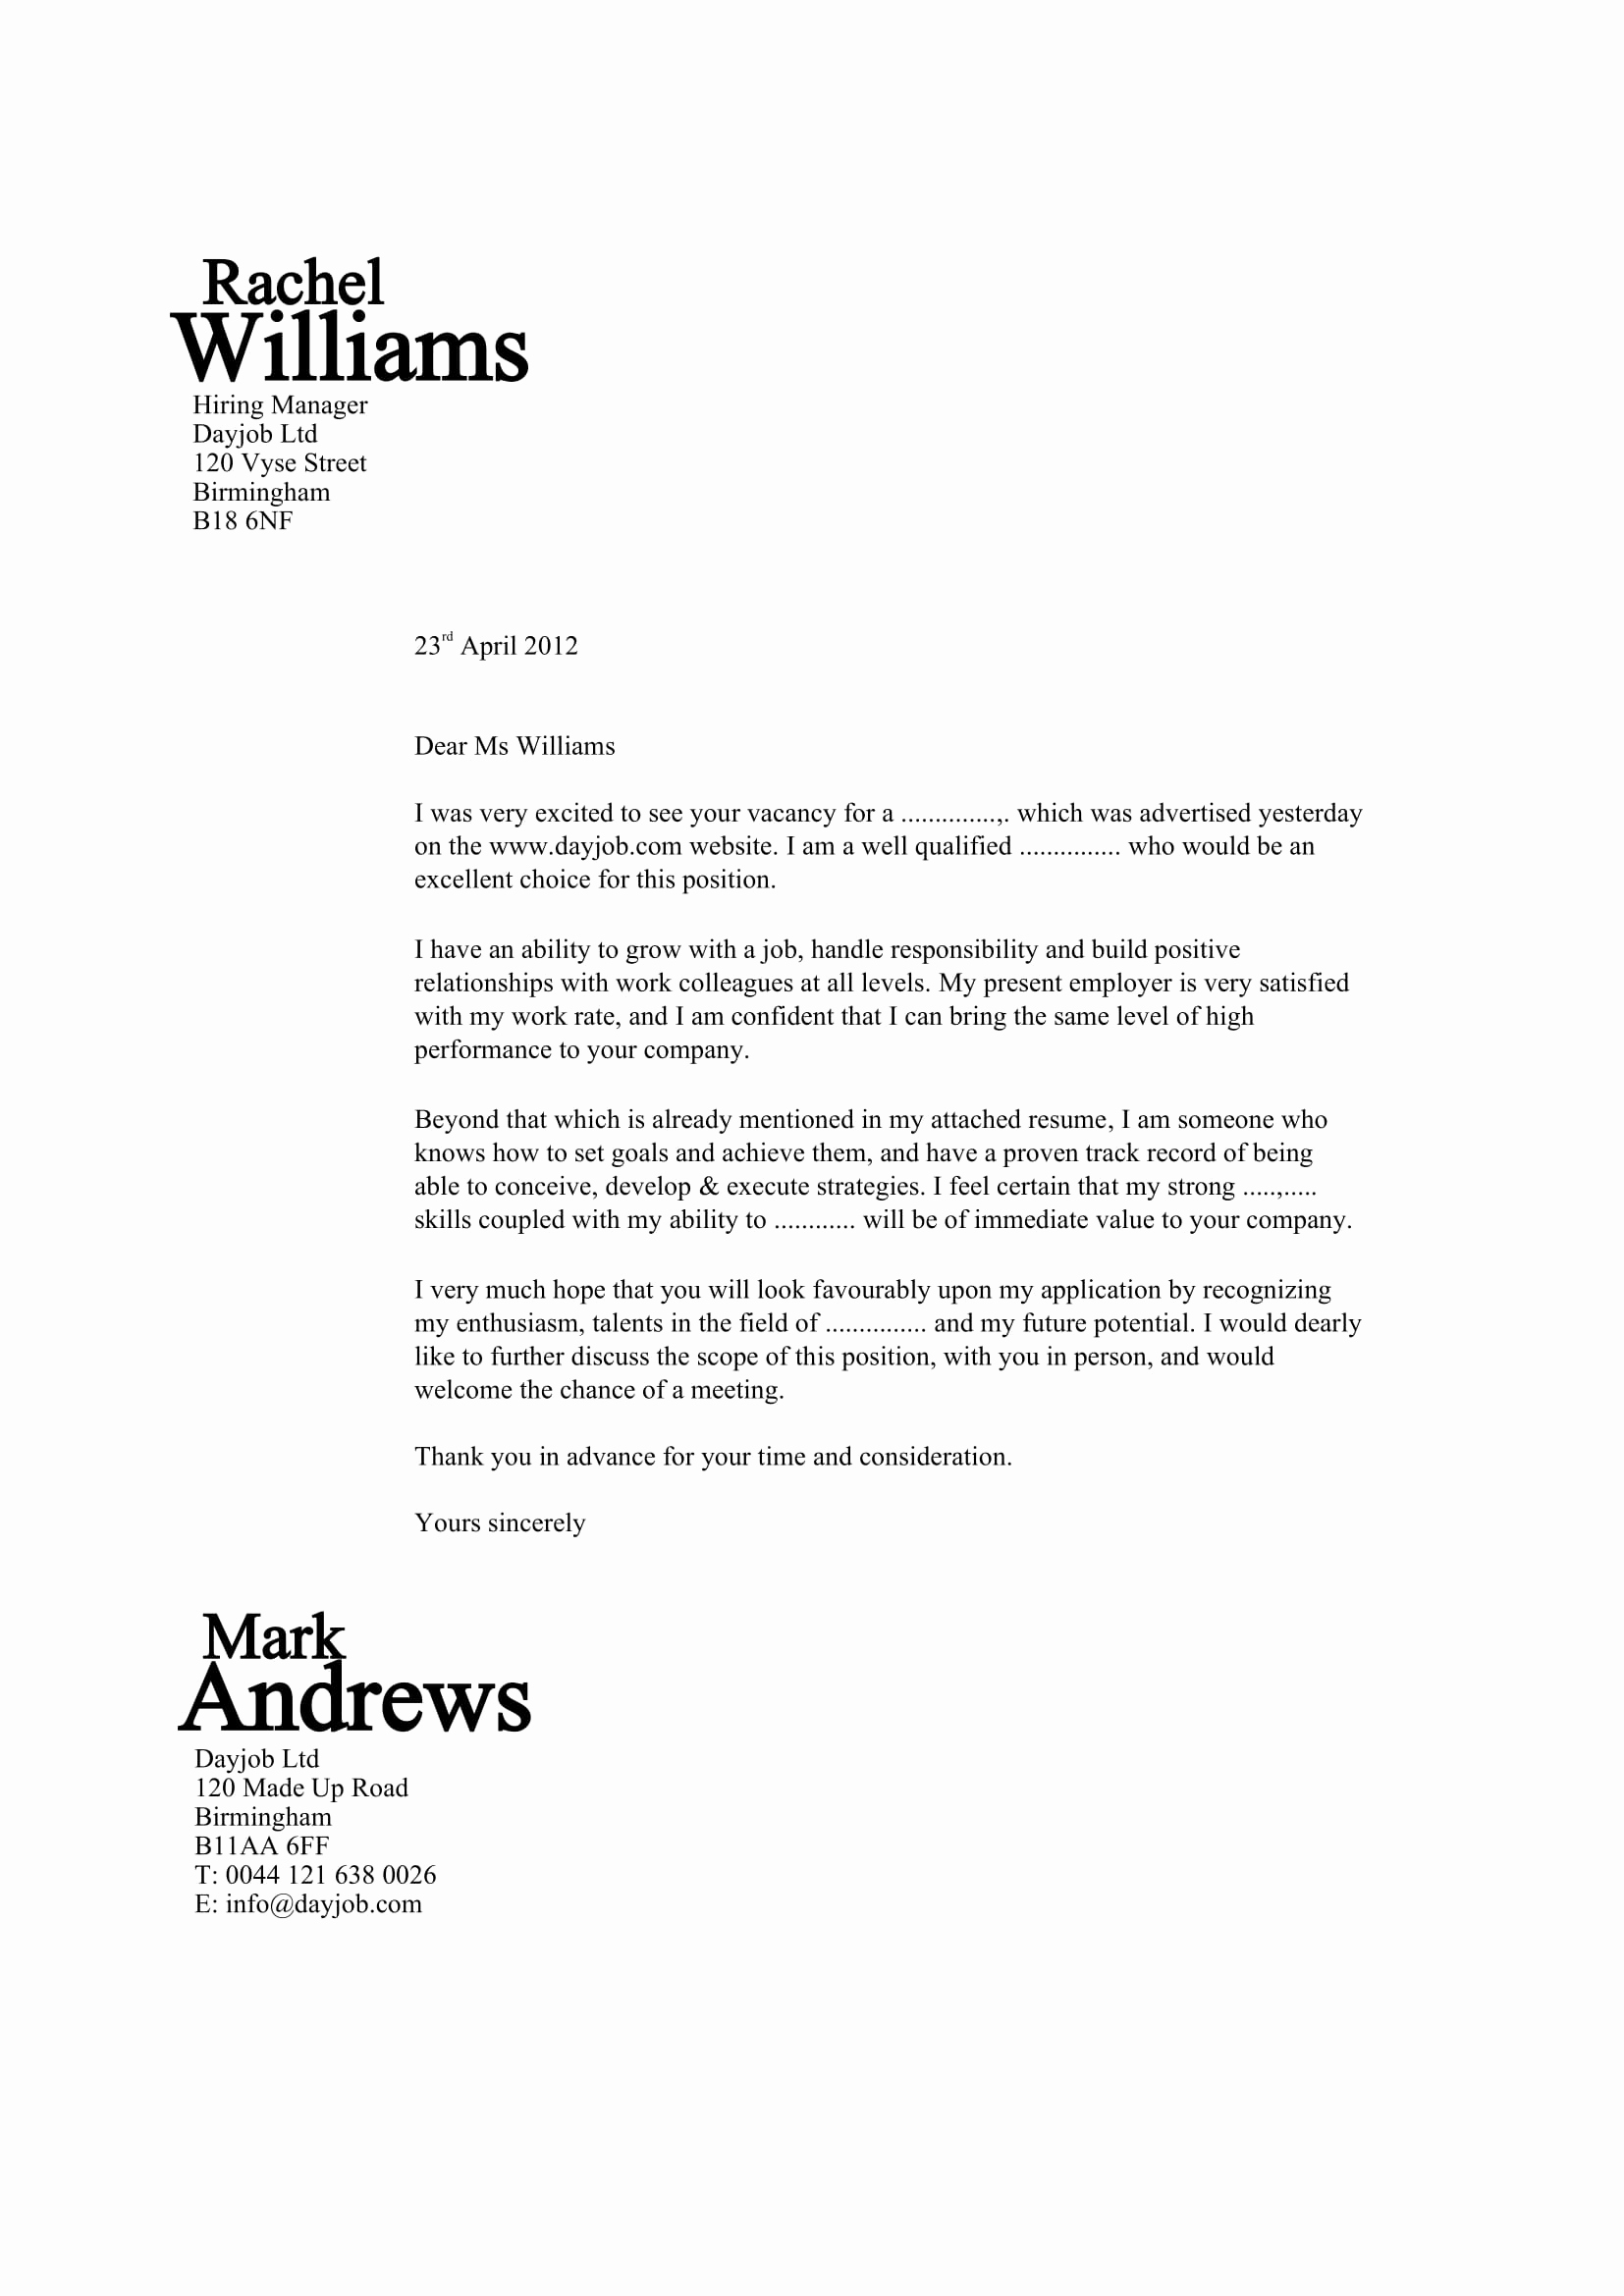 Legal Covering Letters Samples Unique 32 Best Sample Cover Letter Examples for Job Applicants